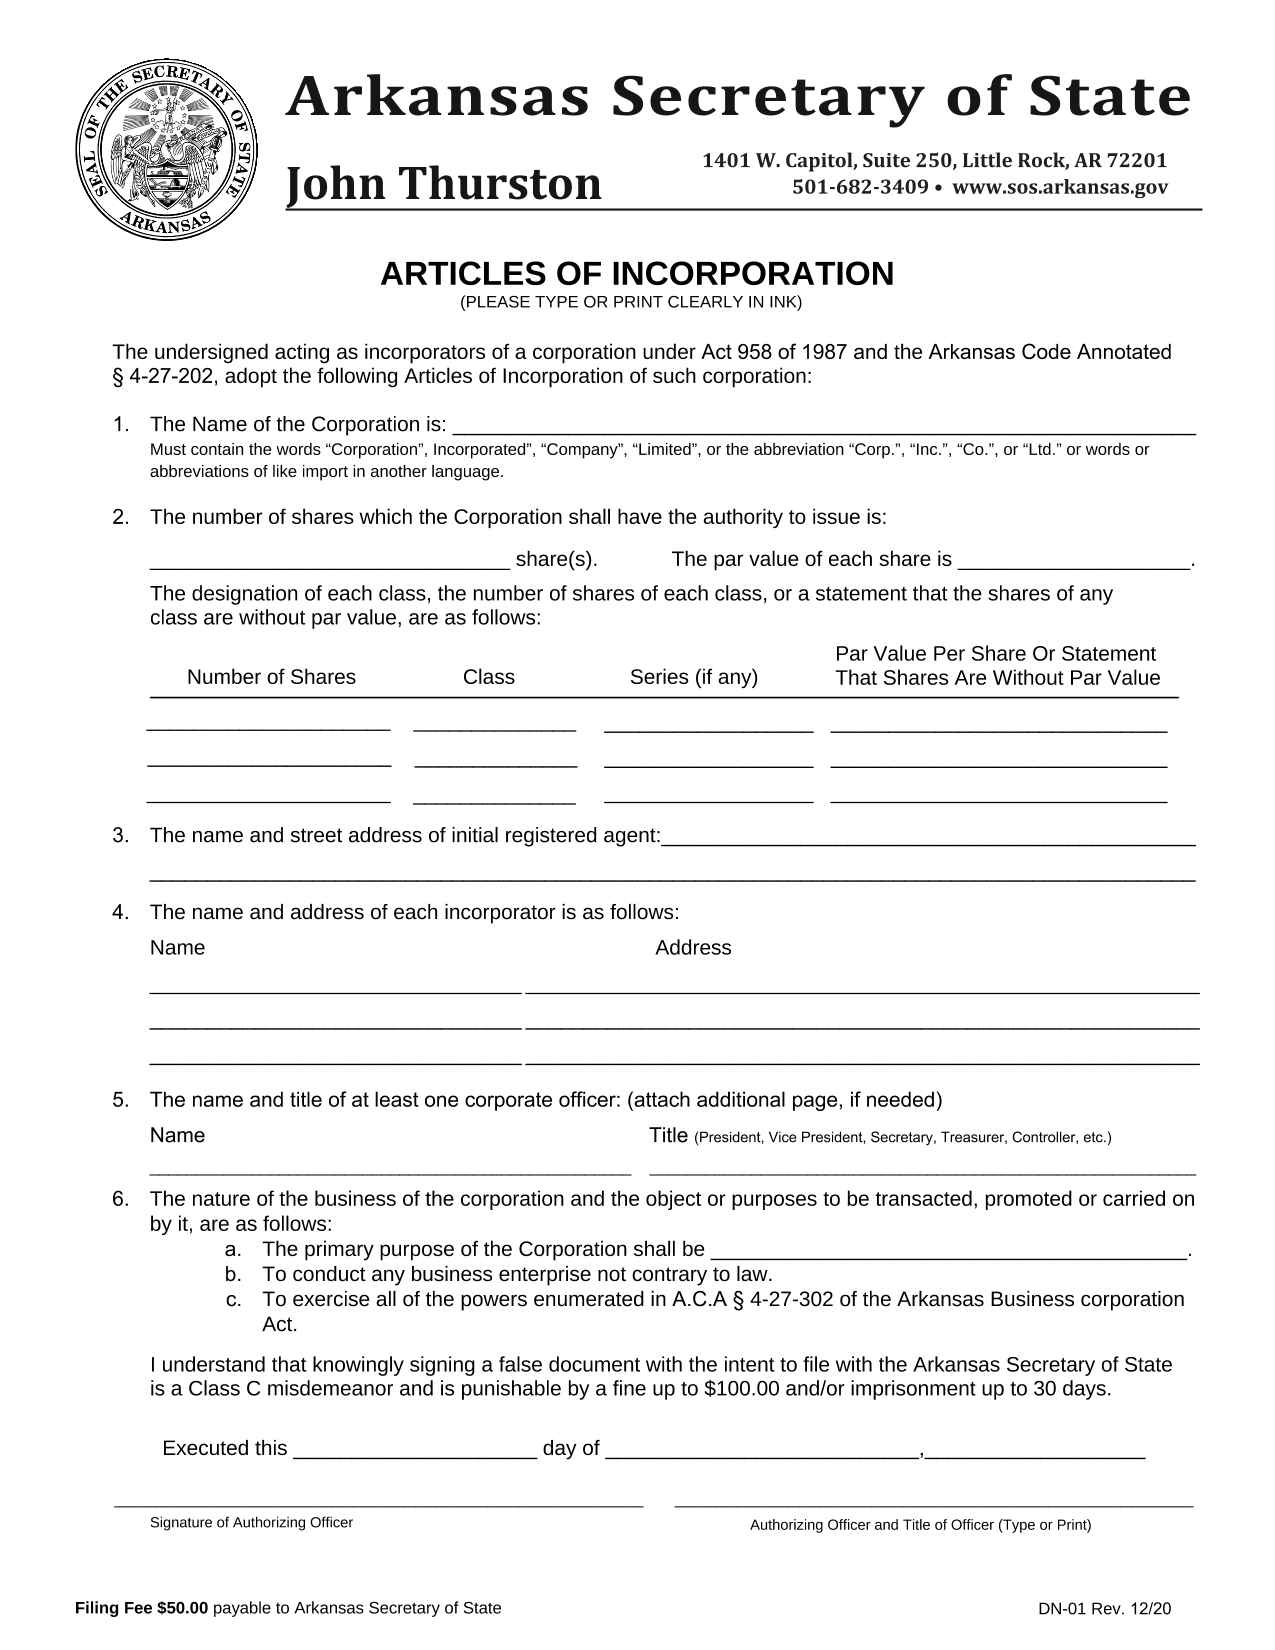 Arkansas Articles of Incorporation